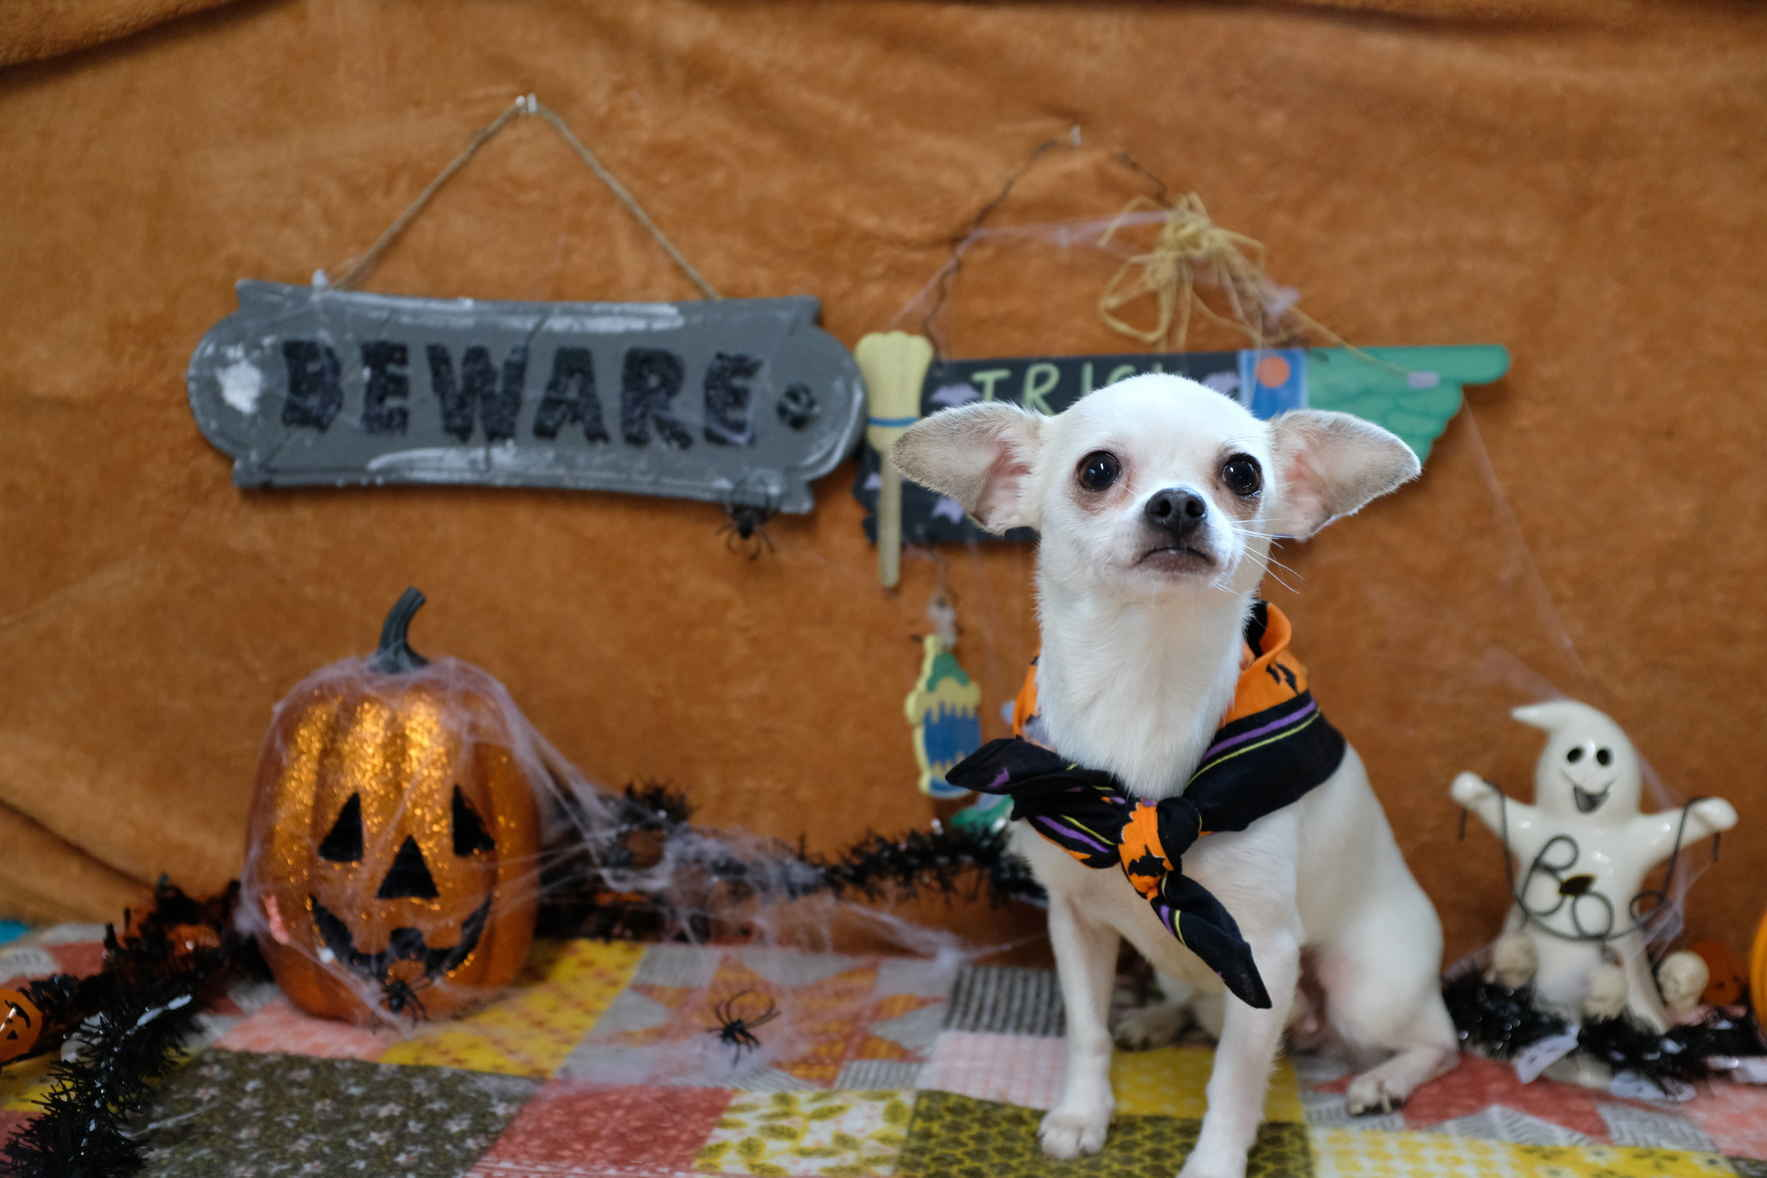 TEXAS CHIHUAHUA RESCUE INC - 2019 - Helping small dogs live